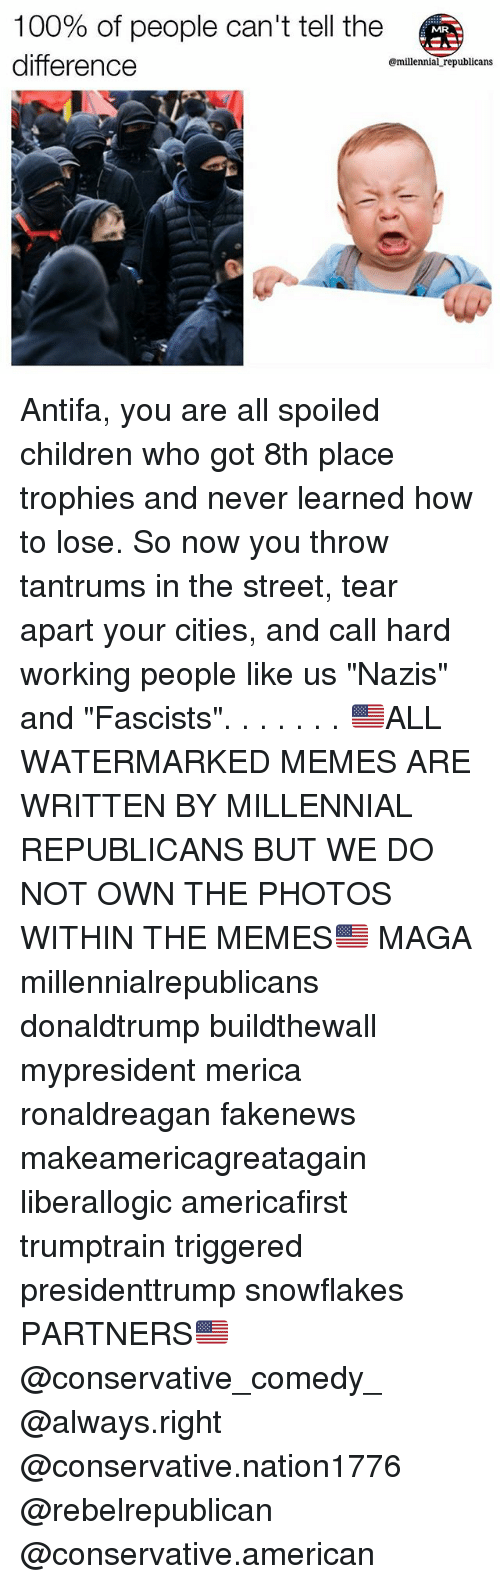 """Anaconda, Children, and Memes: 100% of people can't tell the  difference  @millennial republicans Antifa, you are all spoiled children who got 8th place trophies and never learned how to lose. So now you throw tantrums in the street, tear apart your cities, and call hard working people like us """"Nazis"""" and """"Fascists"""". . . . . . . 🇺🇸ALL WATERMARKED MEMES ARE WRITTEN BY MILLENNIAL REPUBLICANS BUT WE DO NOT OWN THE PHOTOS WITHIN THE MEMES🇺🇸 MAGA millennialrepublicans donaldtrump buildthewall mypresident merica ronaldreagan fakenews makeamericagreatagain liberallogic americafirst trumptrain triggered presidenttrump snowflakes PARTNERS🇺🇸 @conservative_comedy_ @always.right @conservative.nation1776 @rebelrepublican @conservative.american"""